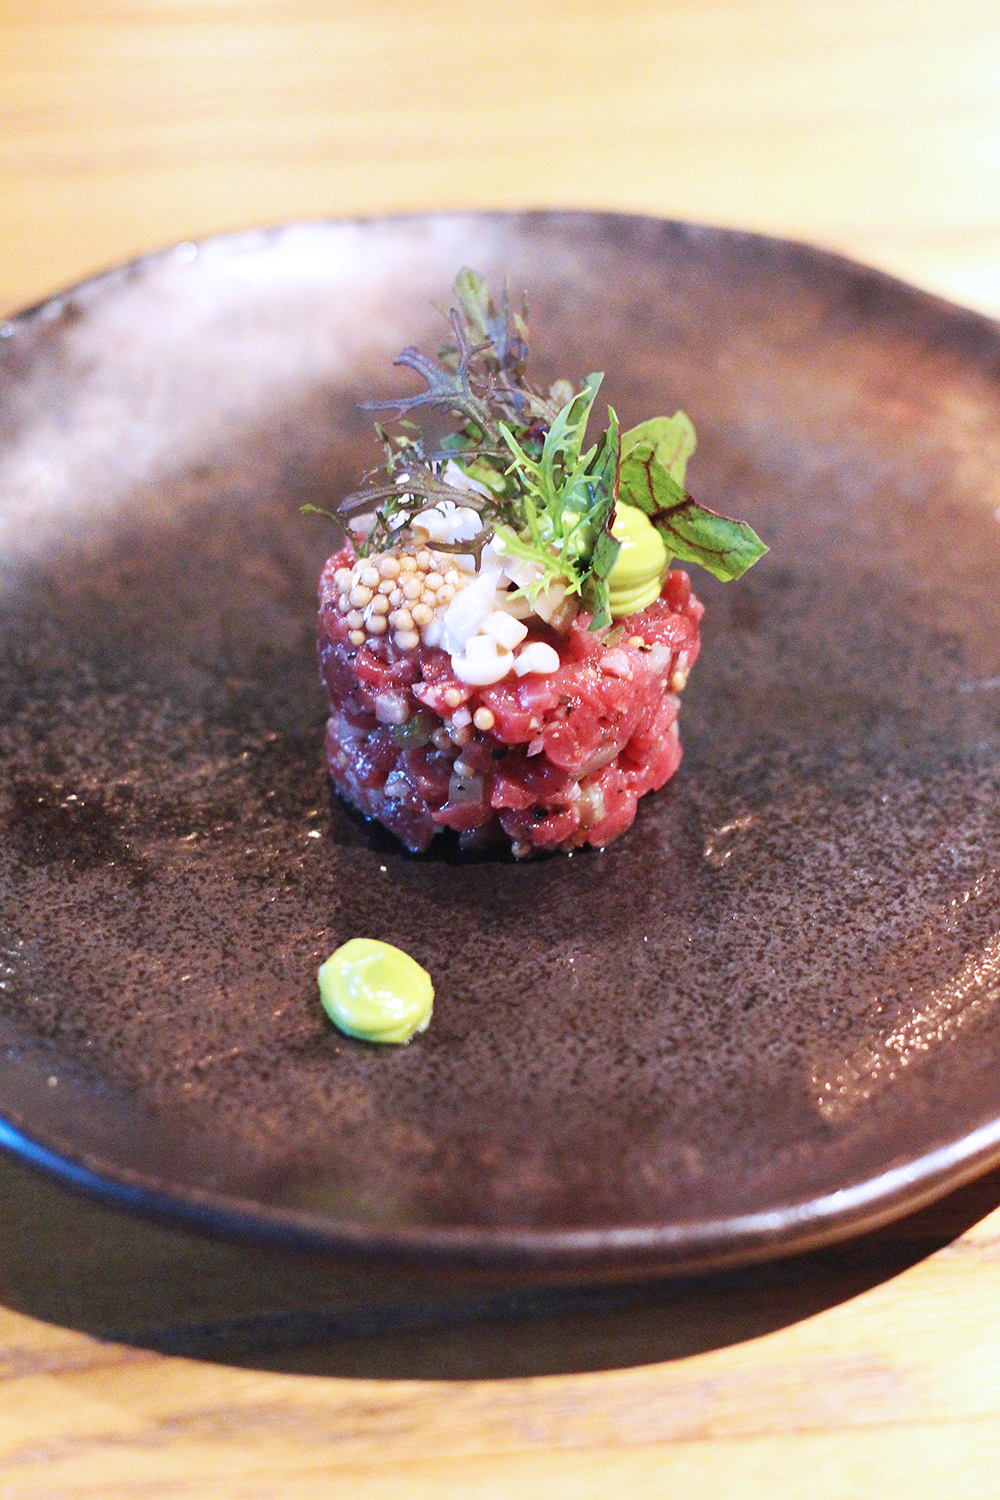 Steak tartare at Rozbrat 20 Restaurant, Warsaw - travel & lifestyle blog